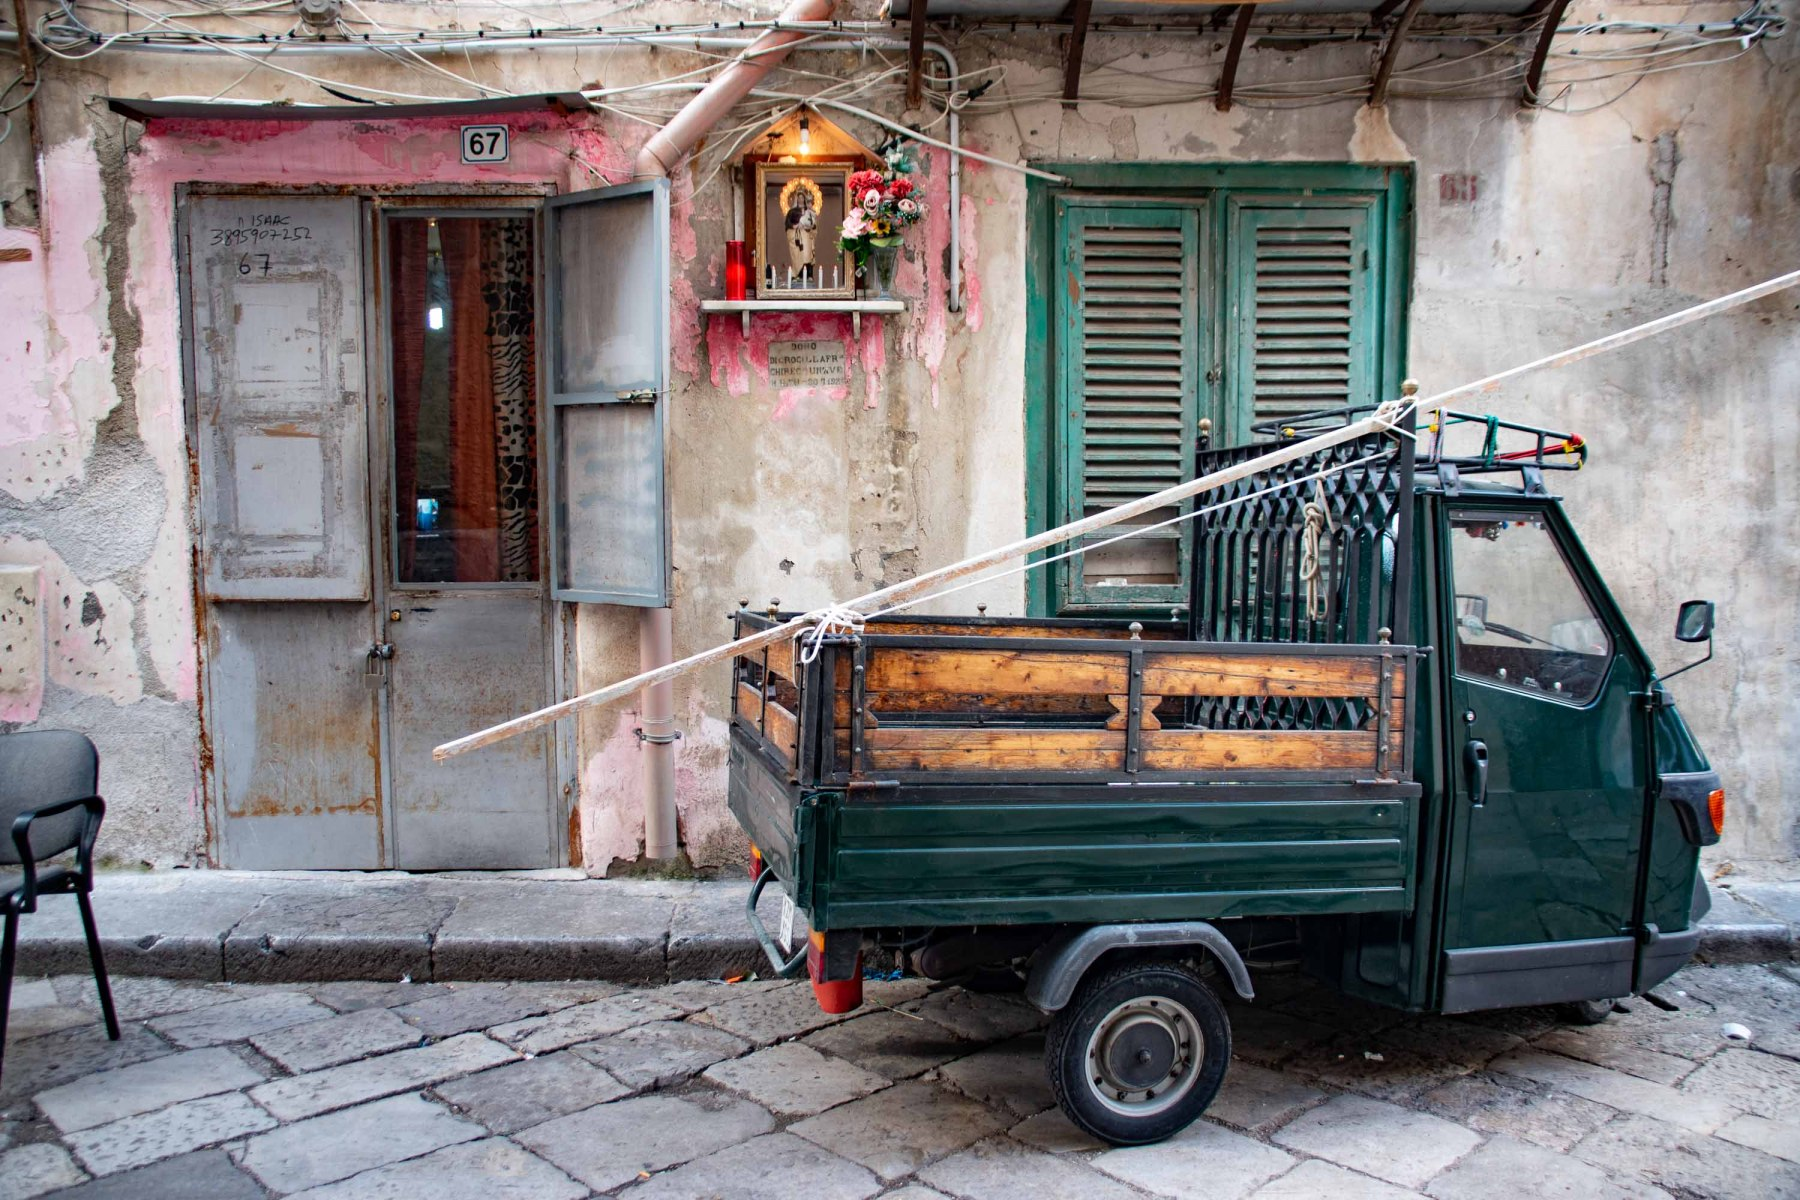 Mini-lorry Ape in front of a house with a religious wayside shrine, seen in Ballarò, Palermo, Sicily, Italy.